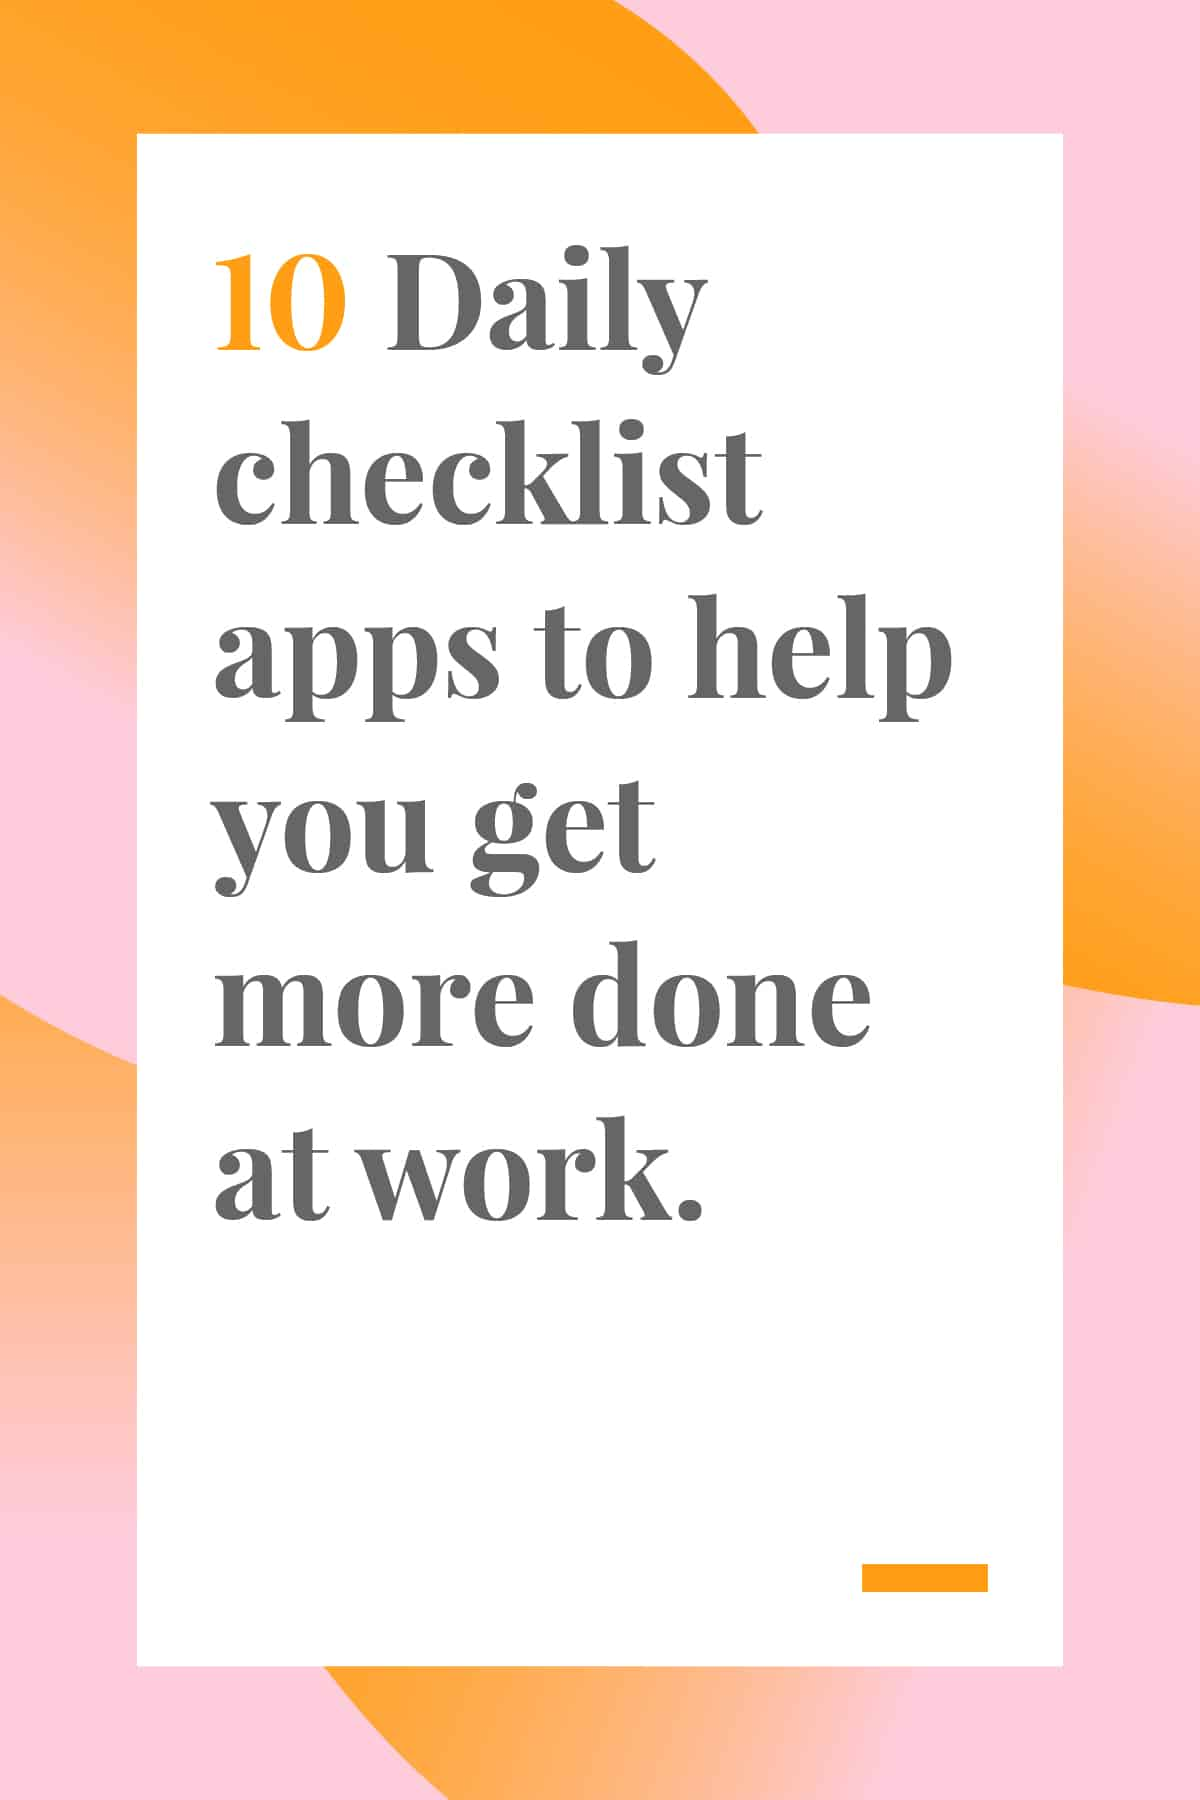 Be more productive with these 10 daily checklist apps that will help you get more done at work and home. #timemanagement #productivity